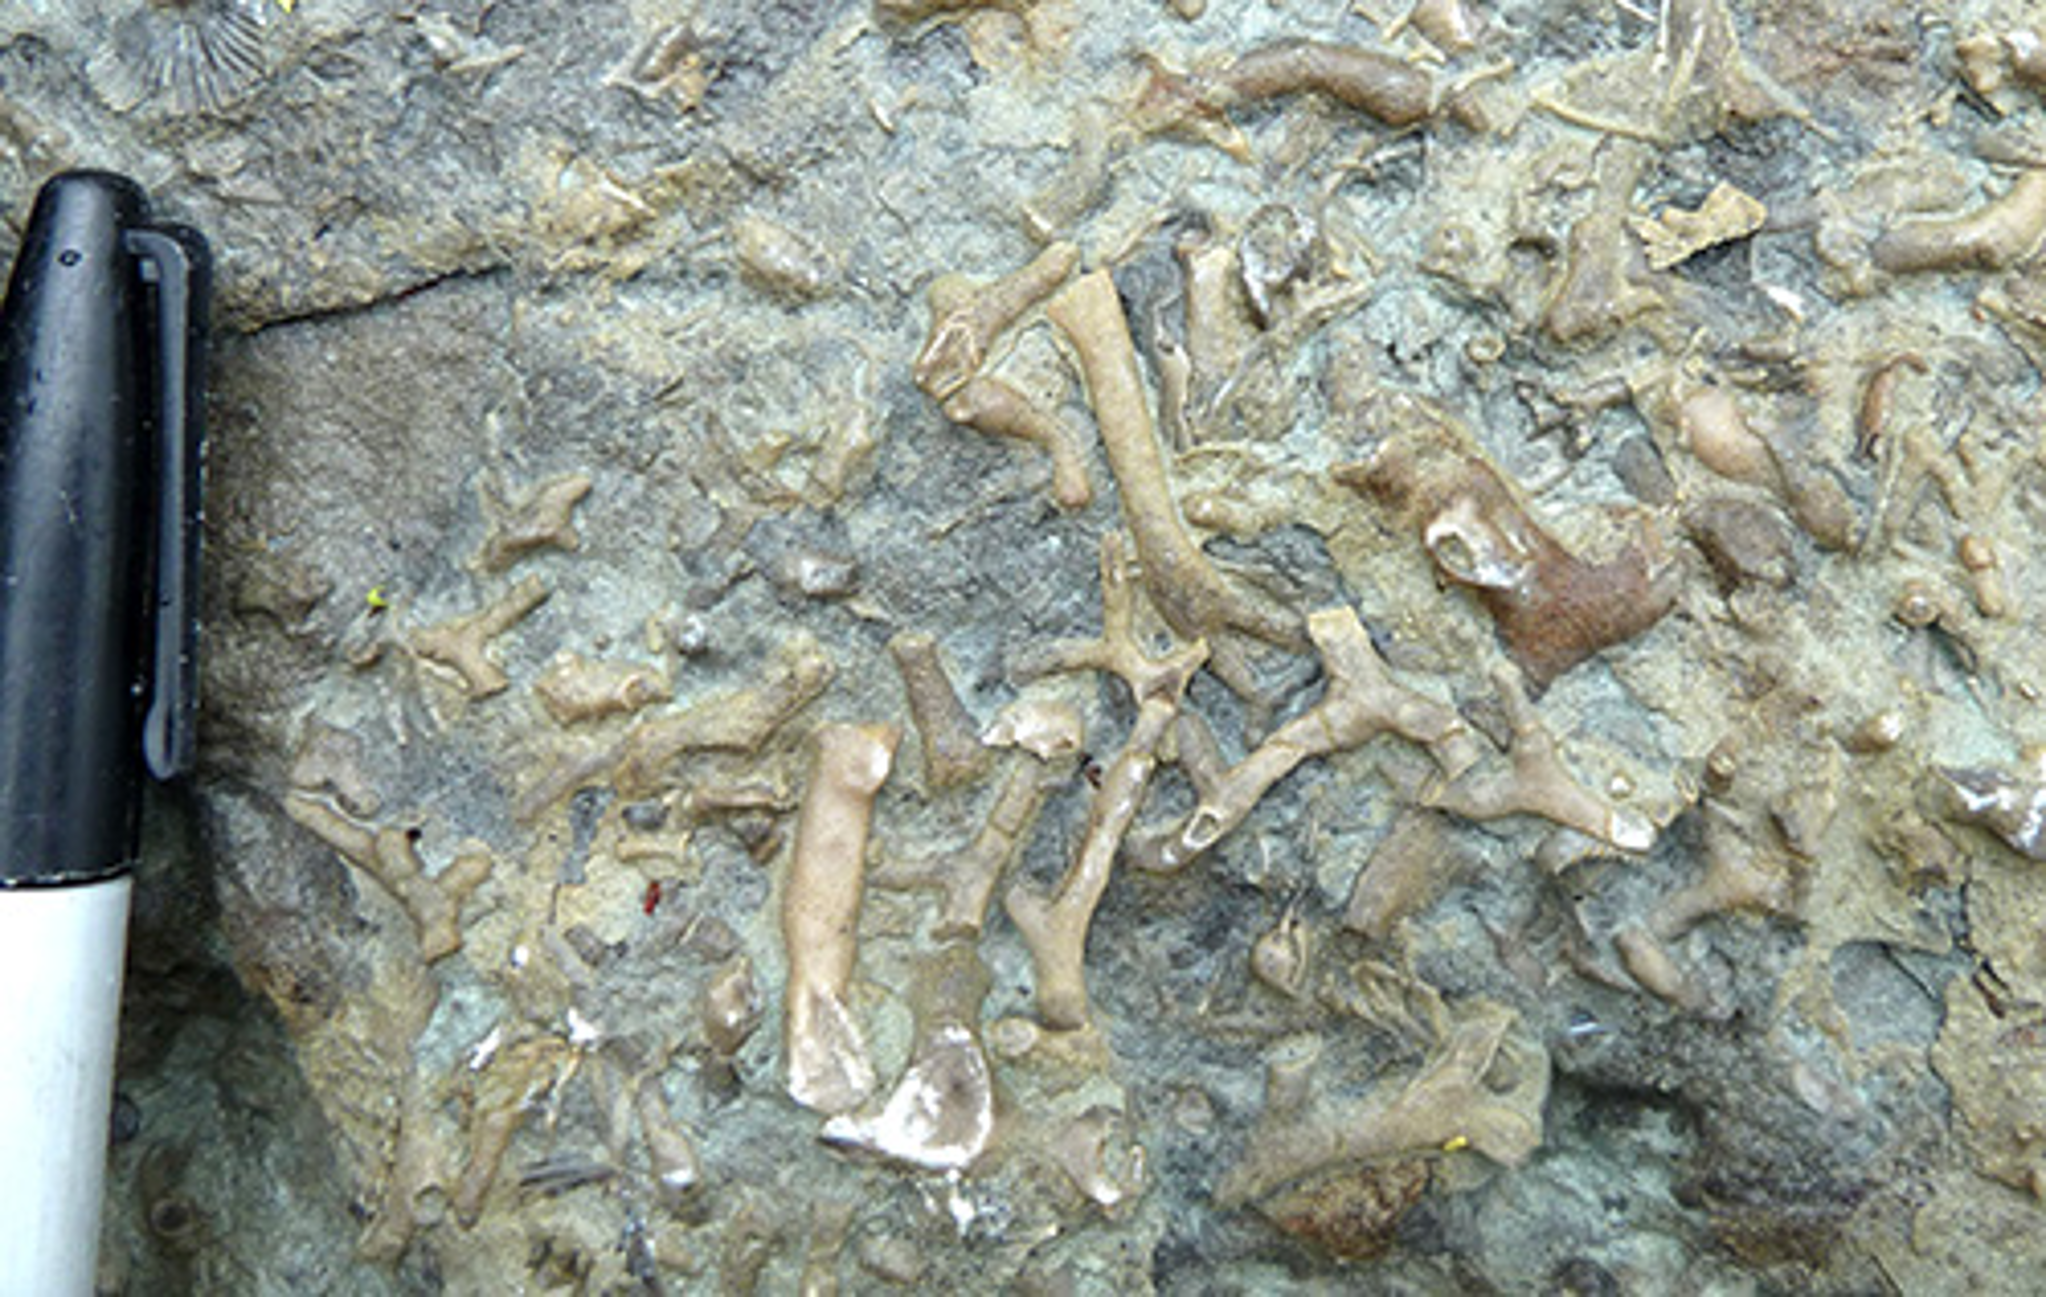 Solved: What Type Of Fossil Is Shown In Specimen 2? Rugose